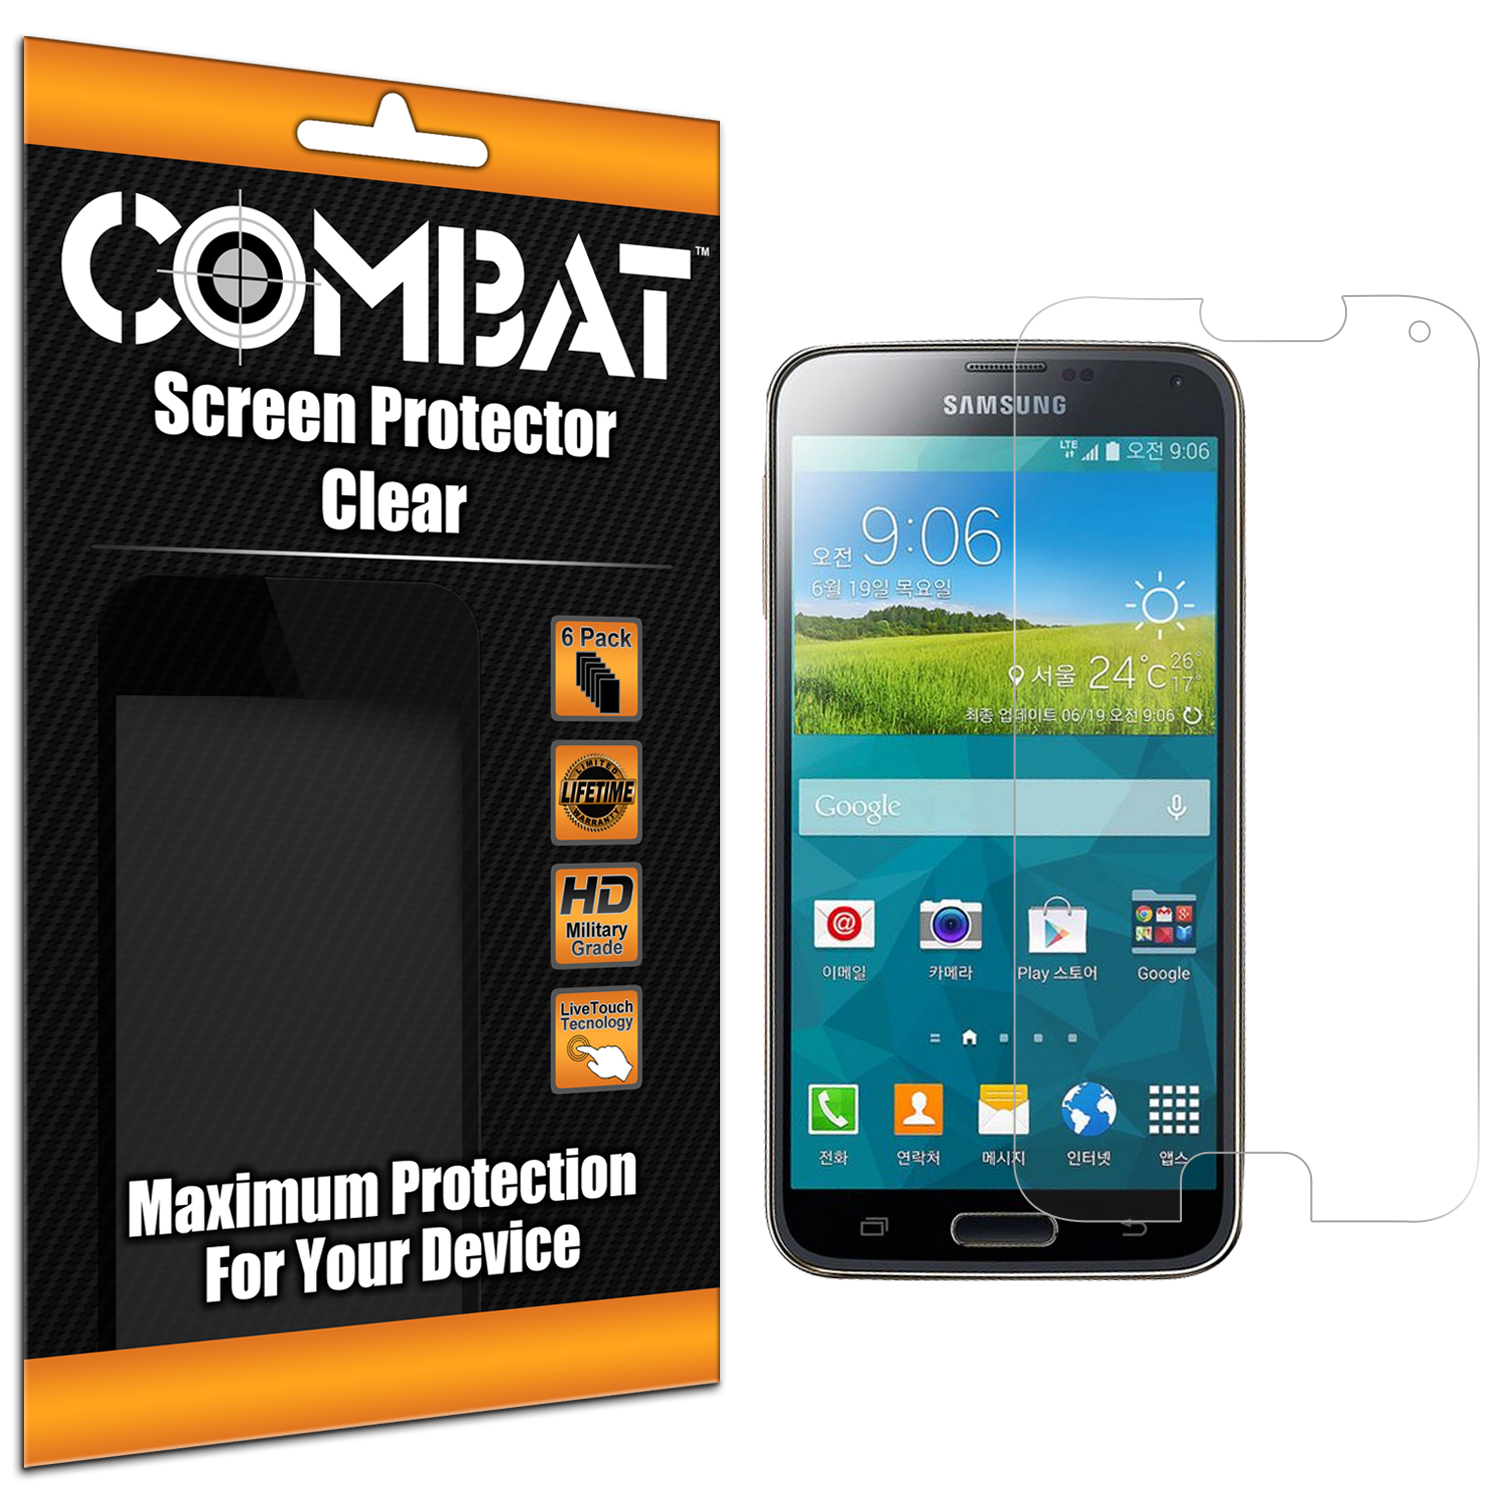 Samsung Galaxy S5 Prime G906 Combat 6 Pack HD Clear Screen Protector